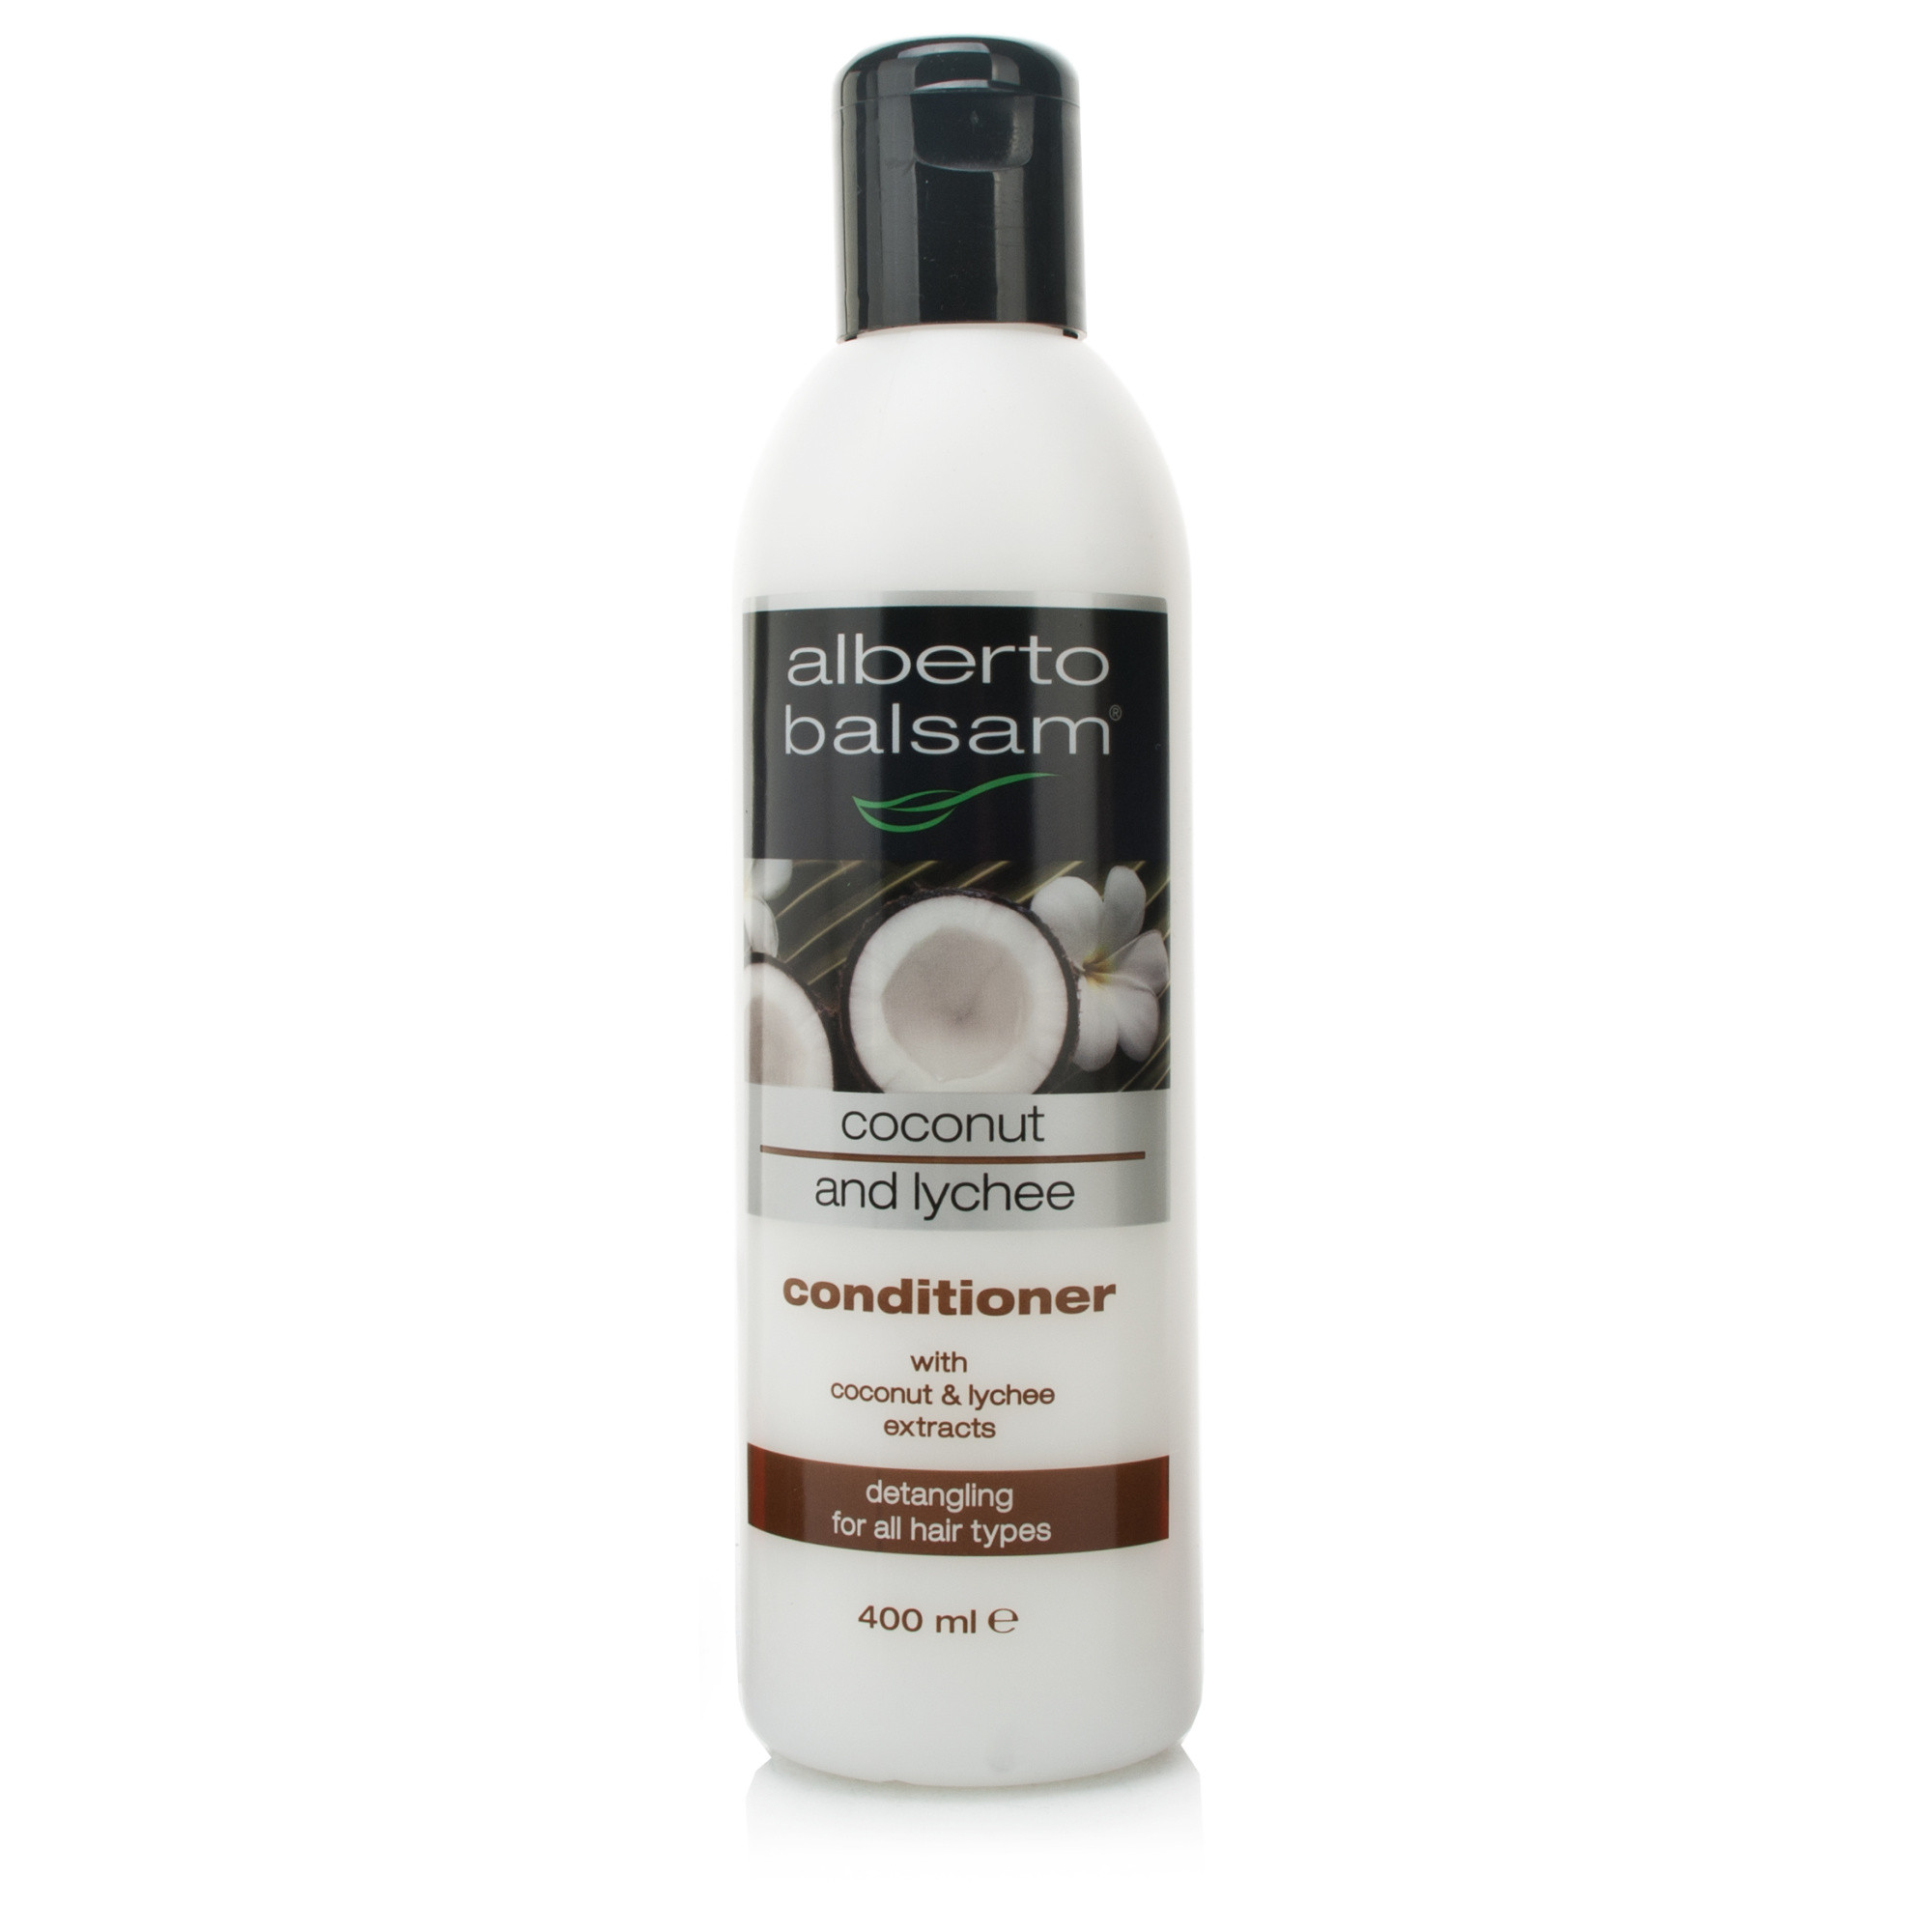 Alberto Balsam Coconut and Lychee Conditioner